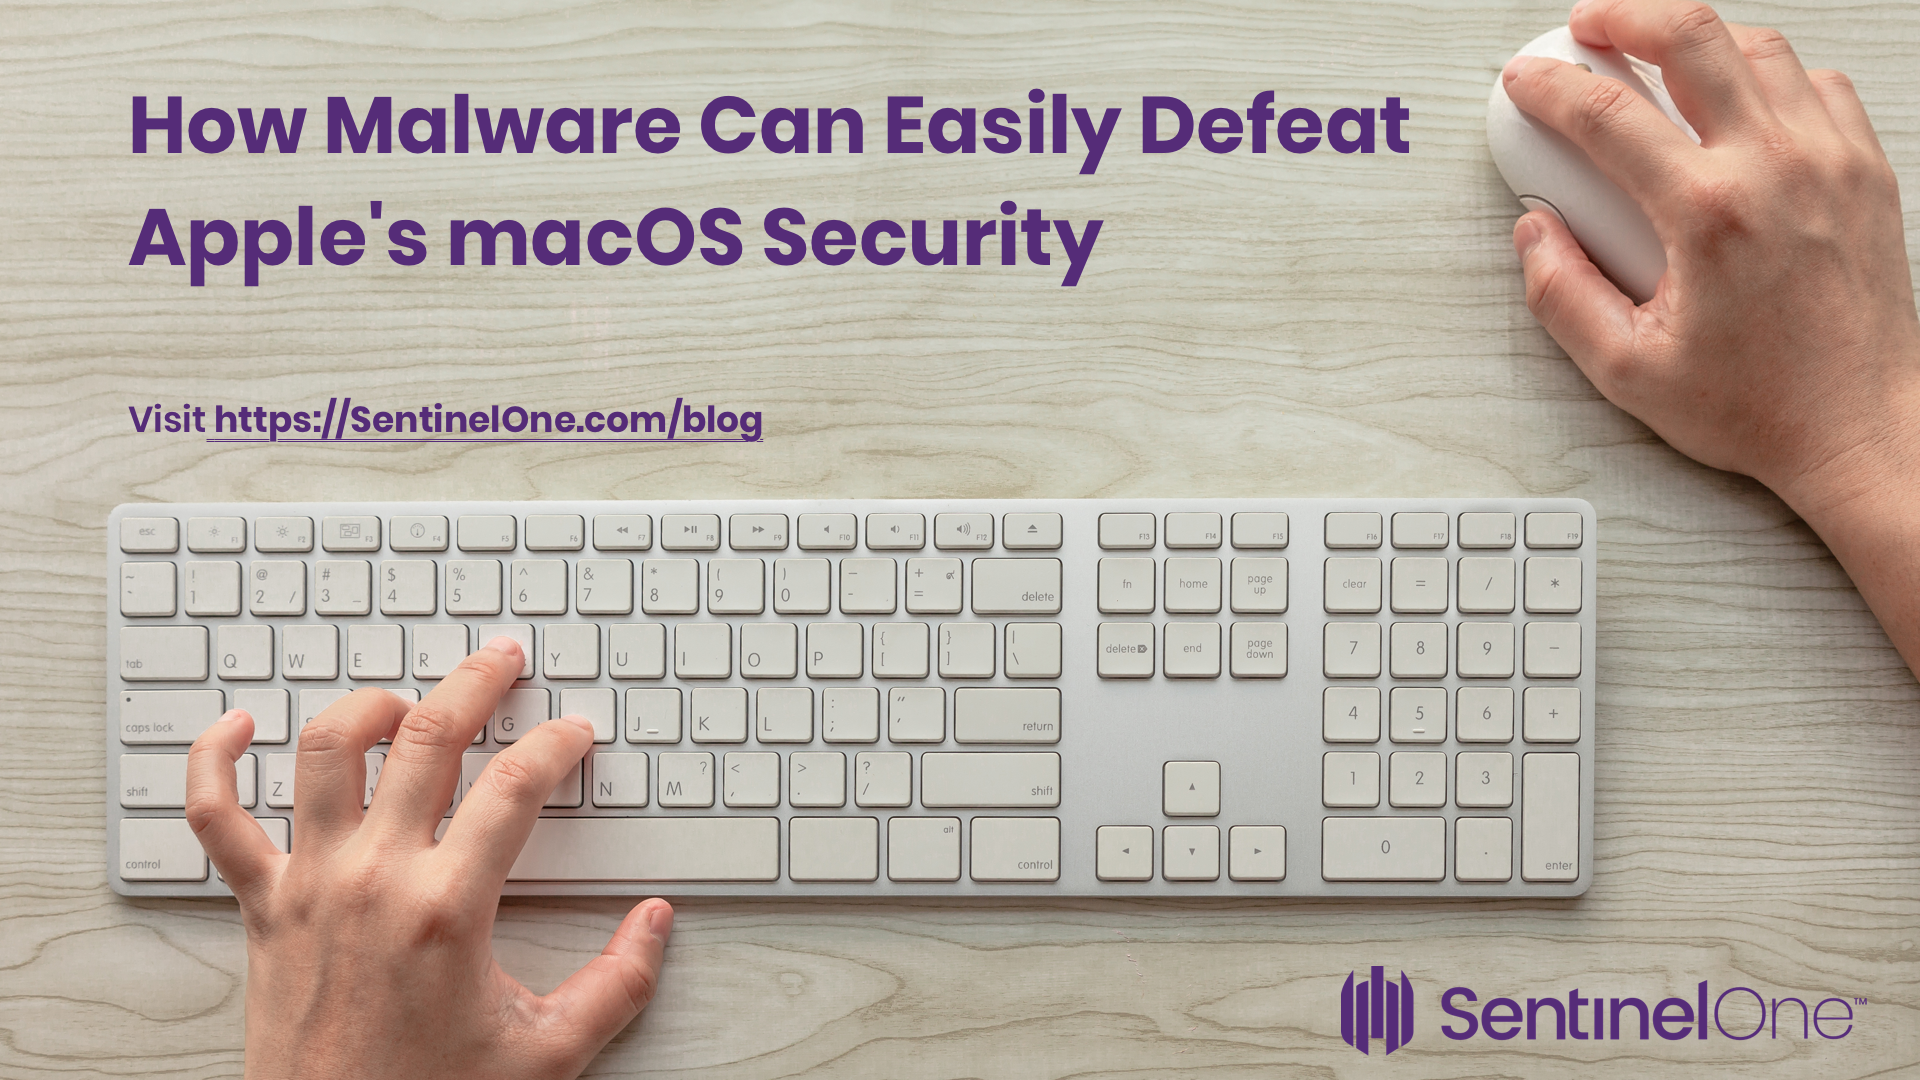 How Malware Can Easily Defeat Apple's macOS Security